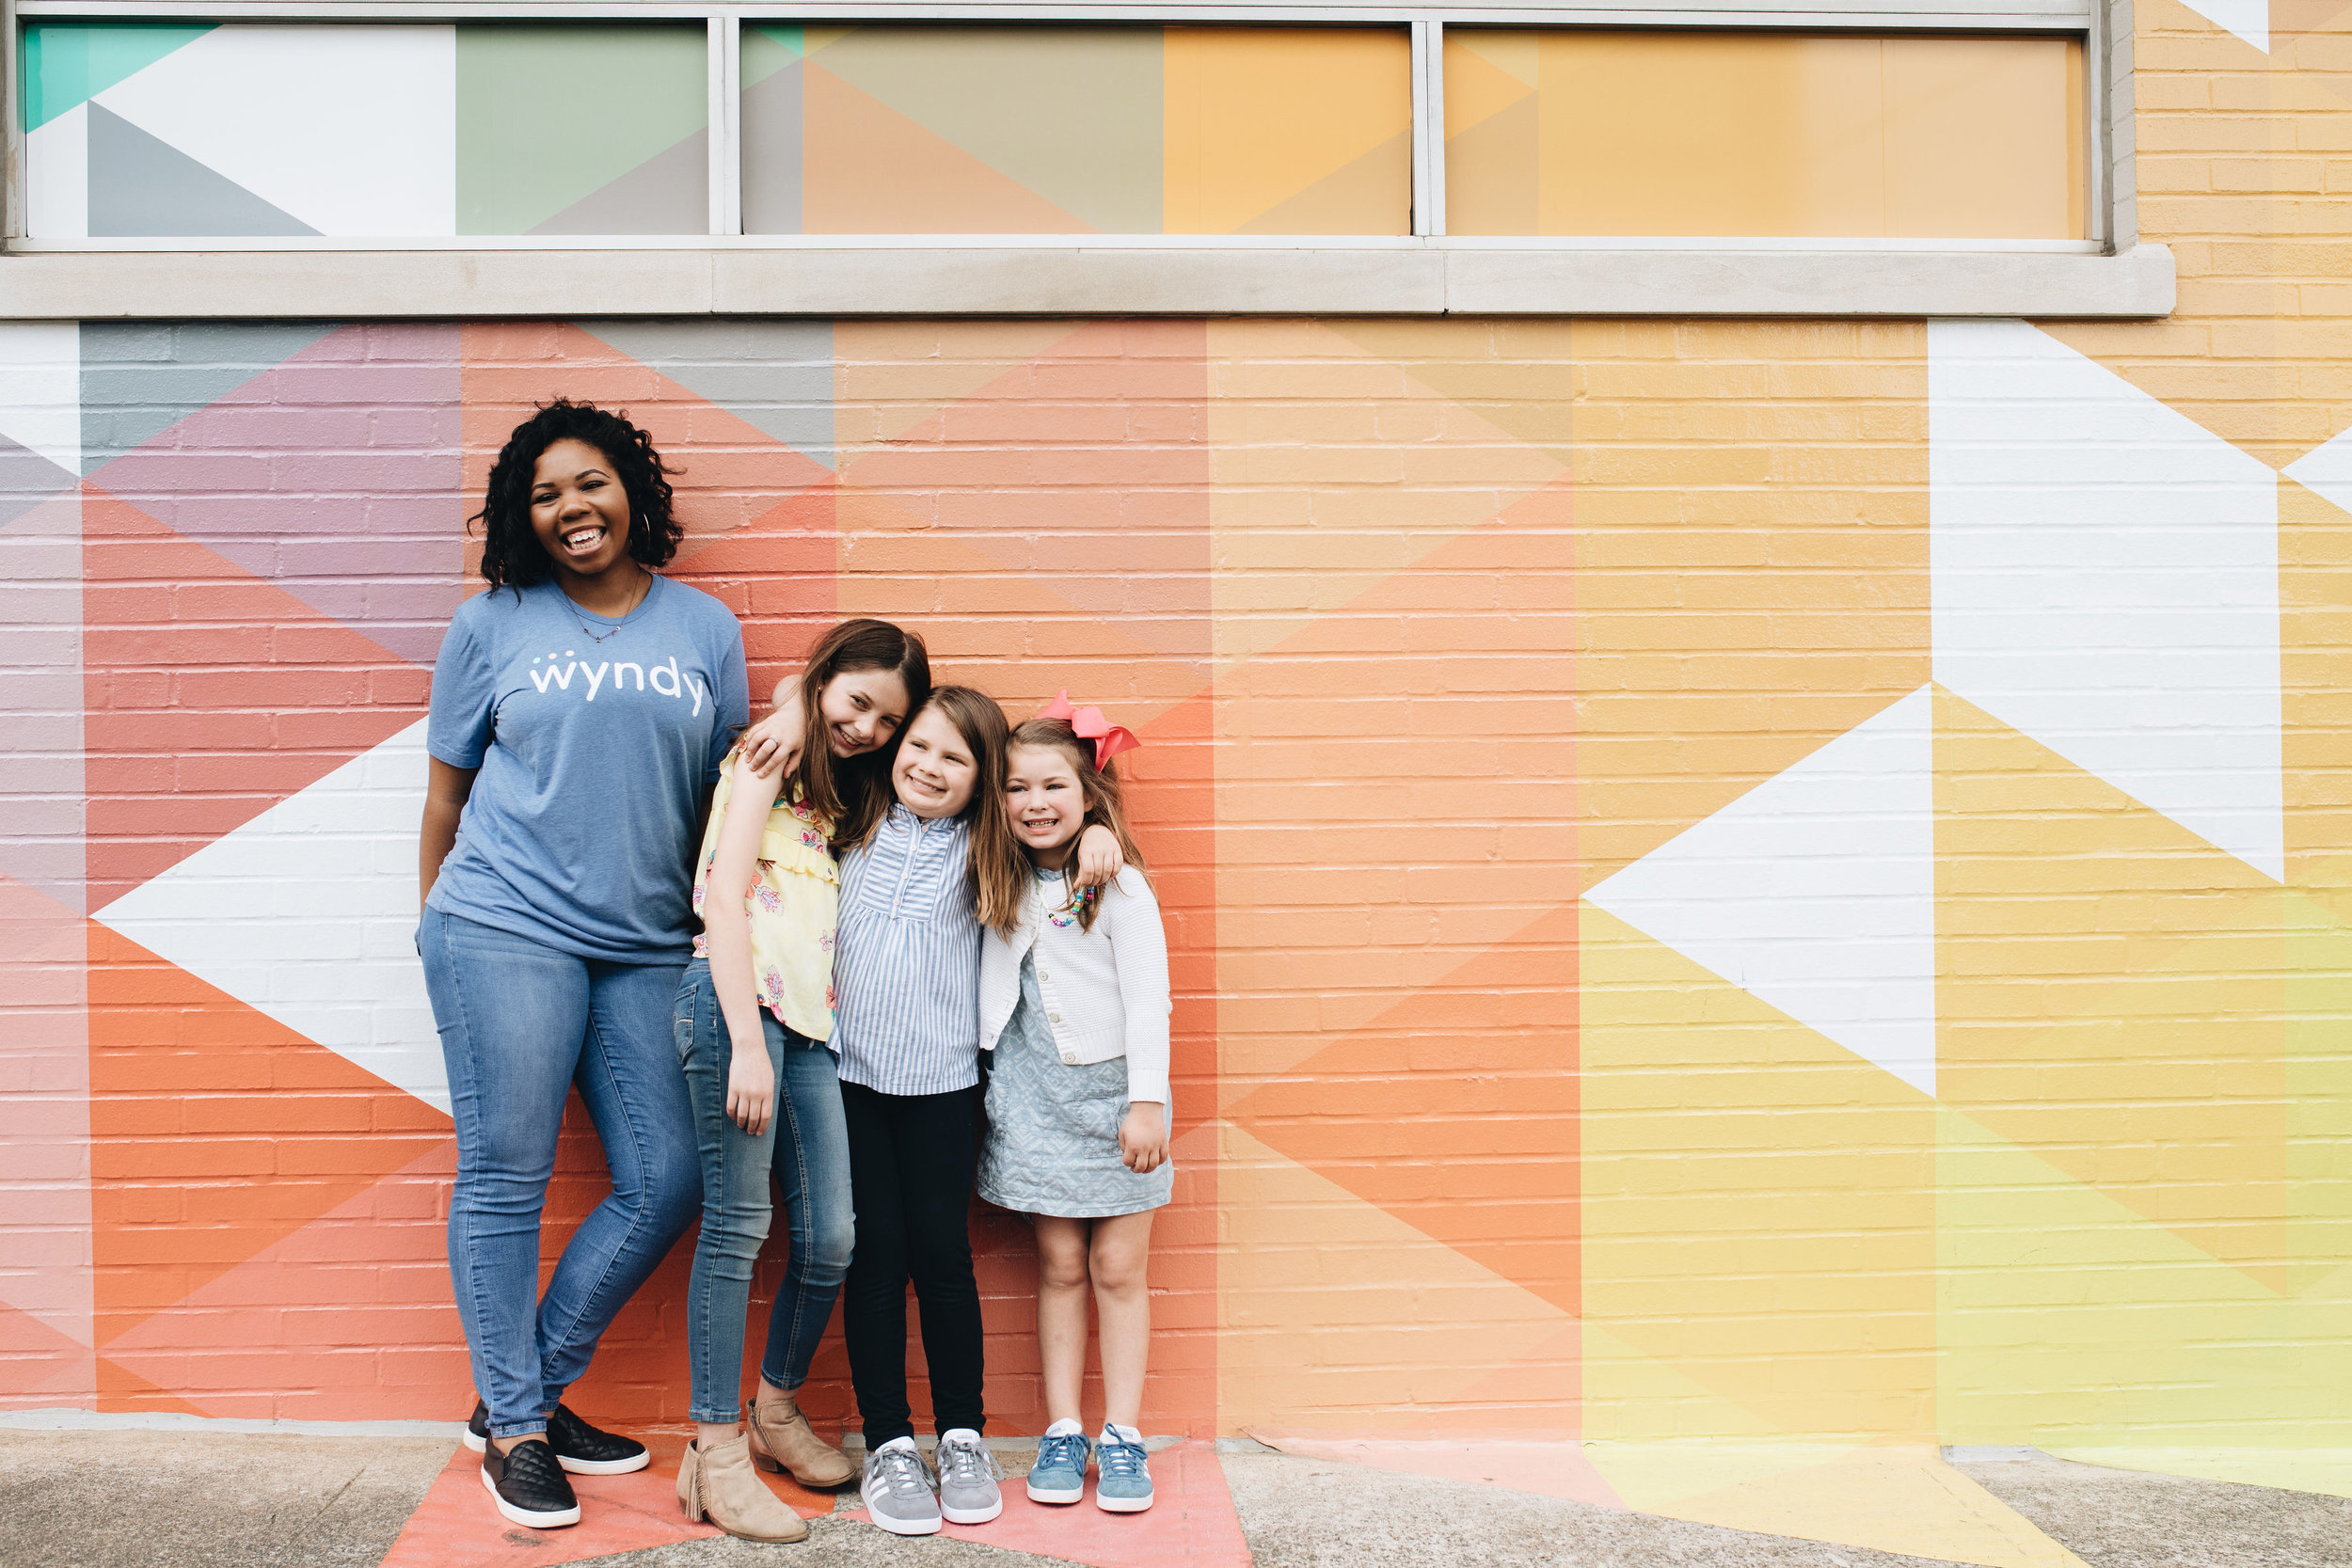 Wyndy makes it easy to get background-checked college babysitters in Charleston - More than 12,000 families in Atlanta, New Orleans, Nashville, Birmingham, and Memphis trust Wyndy.